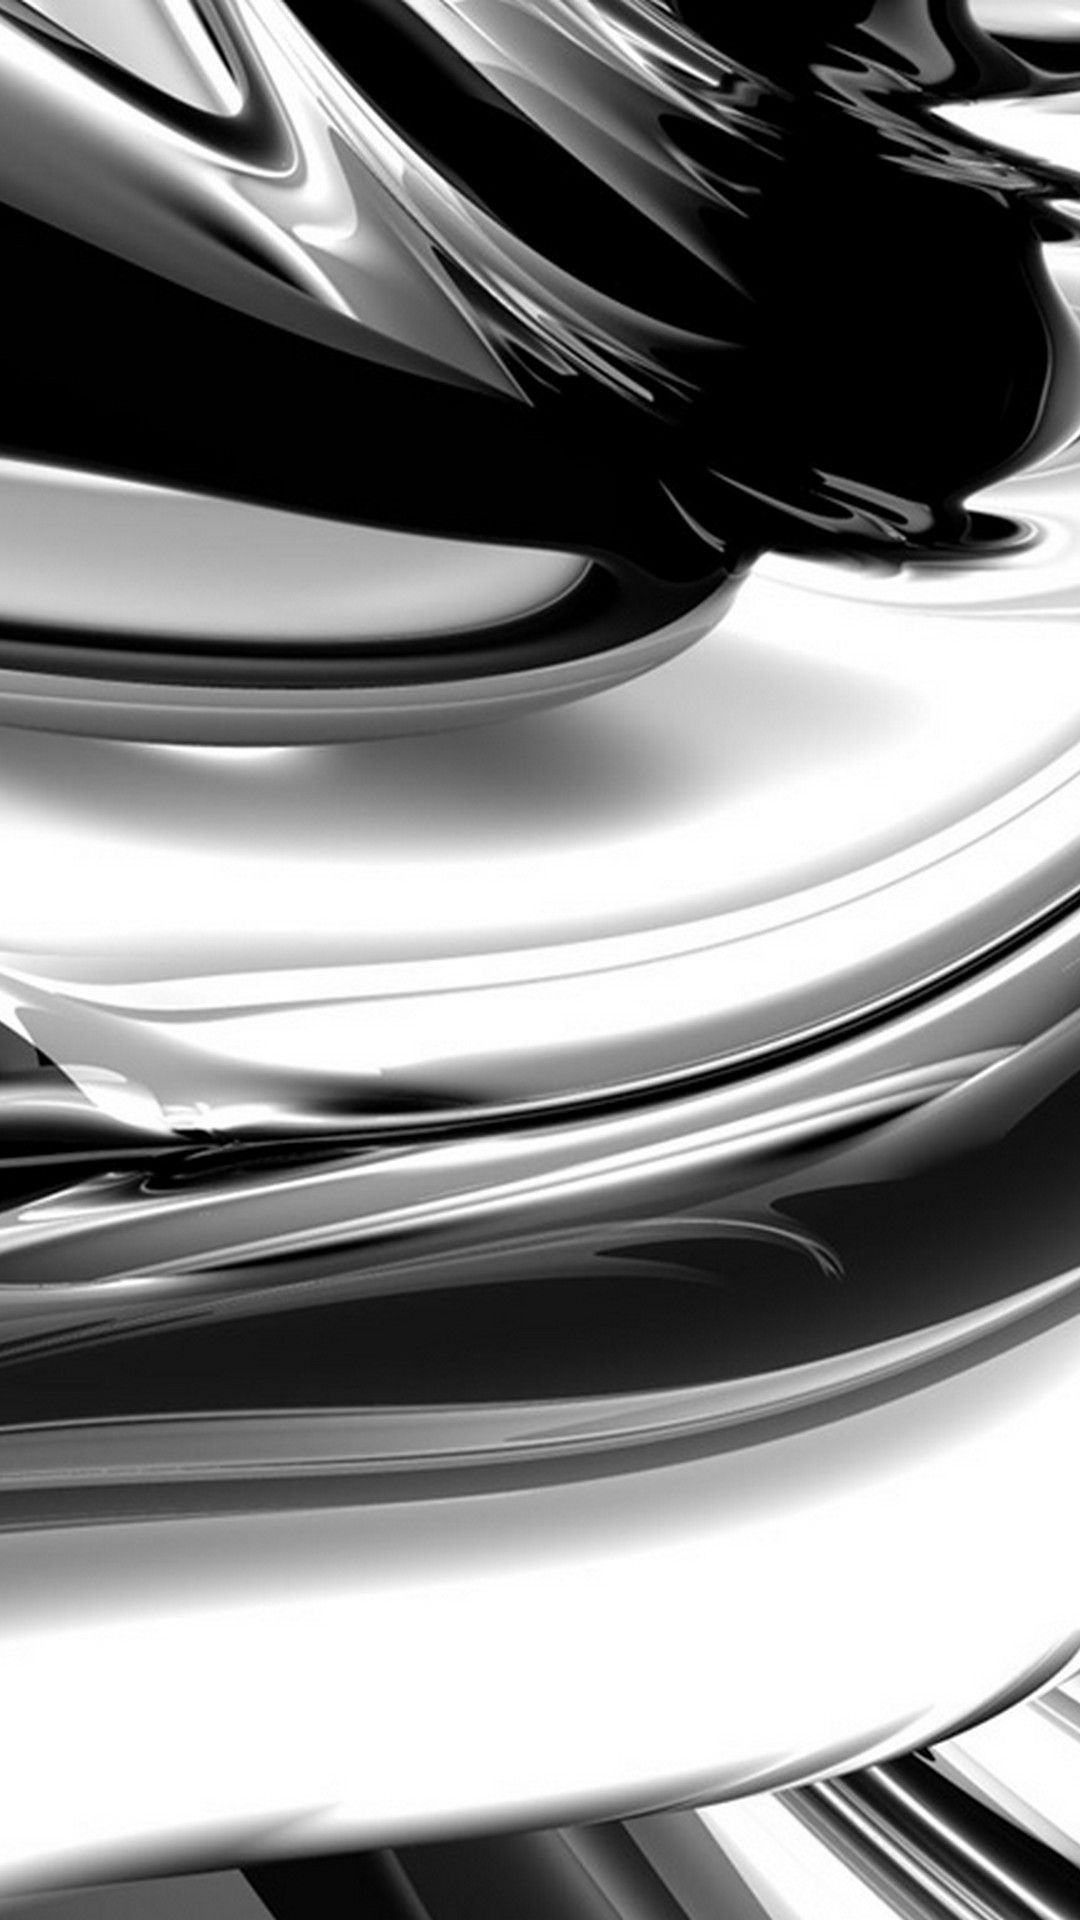 Silver Backgrounds For Android Is The Best Android Wallpaper Hd